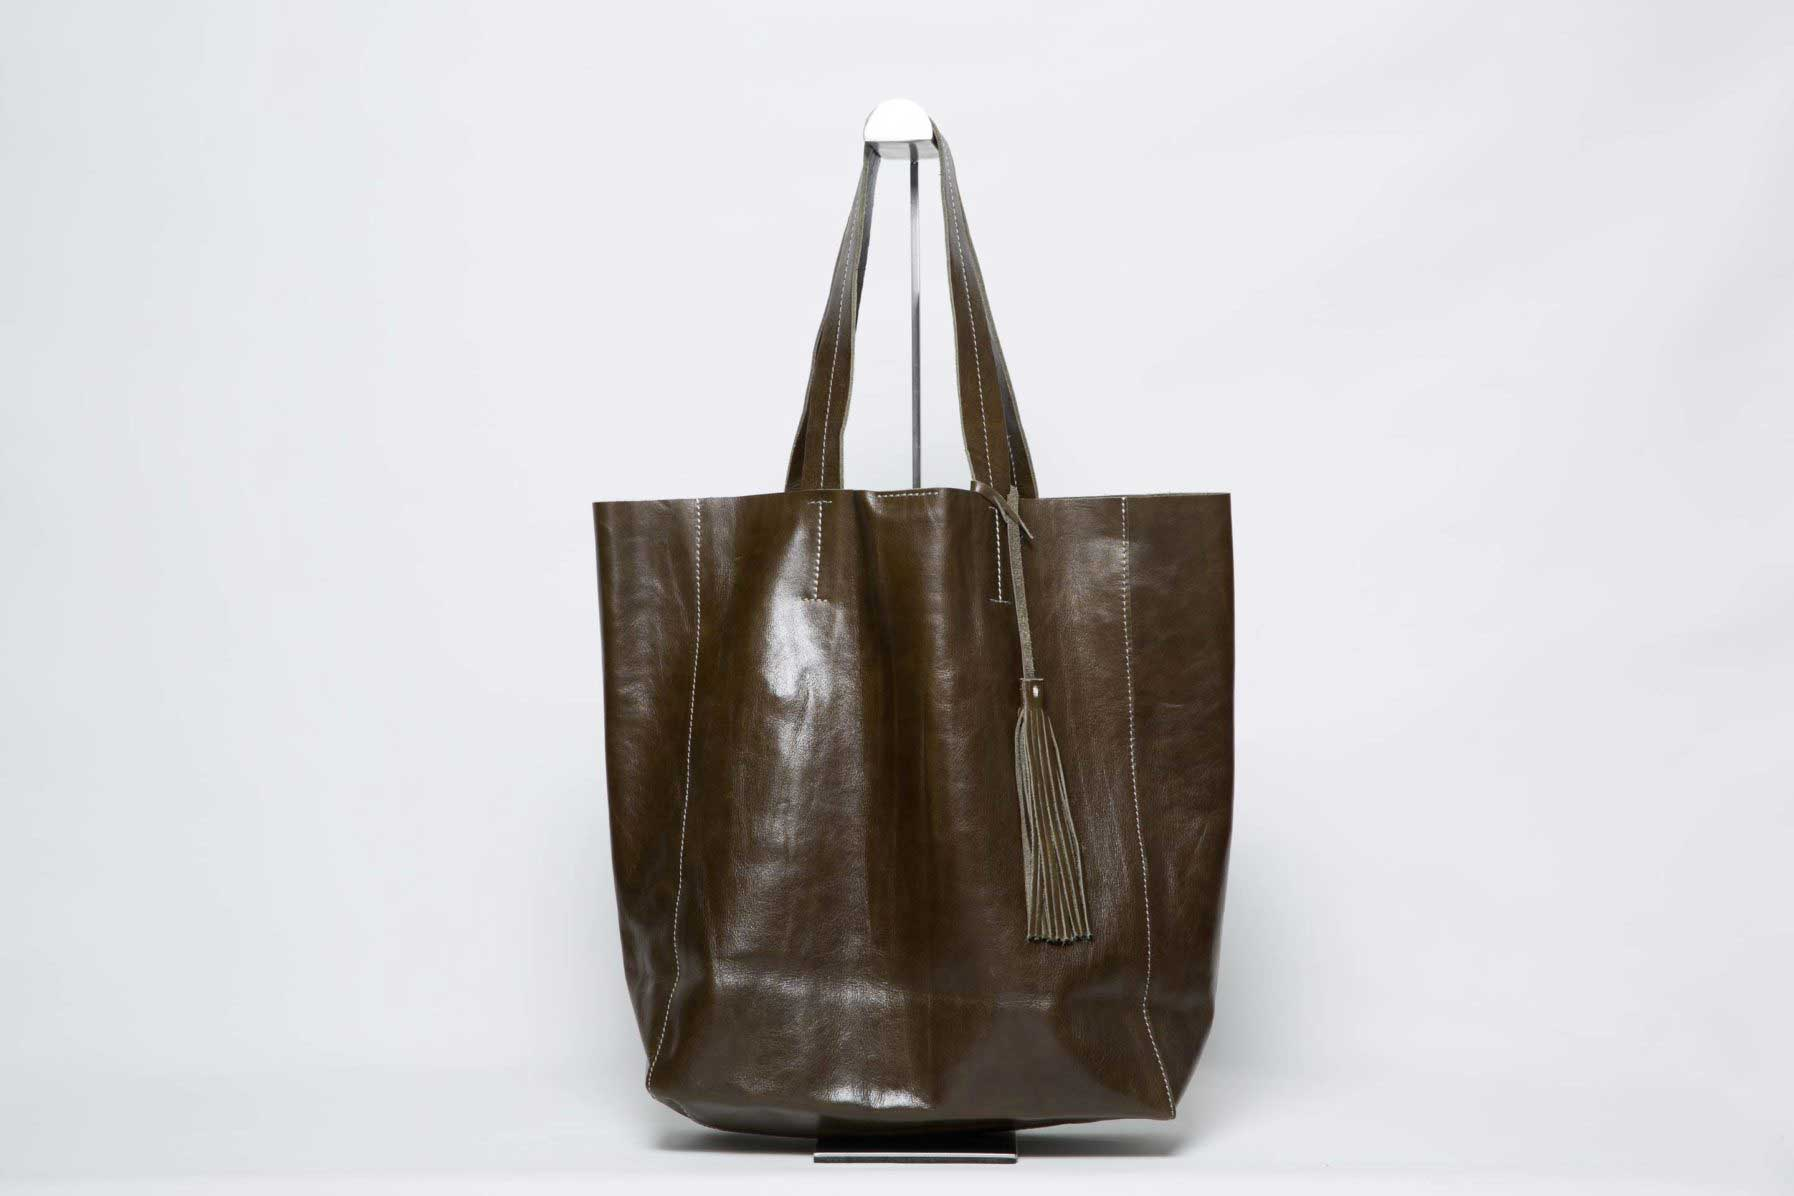 Sac Grand Shopper En Cuir Bronze - avec pompon - ordinari.shop